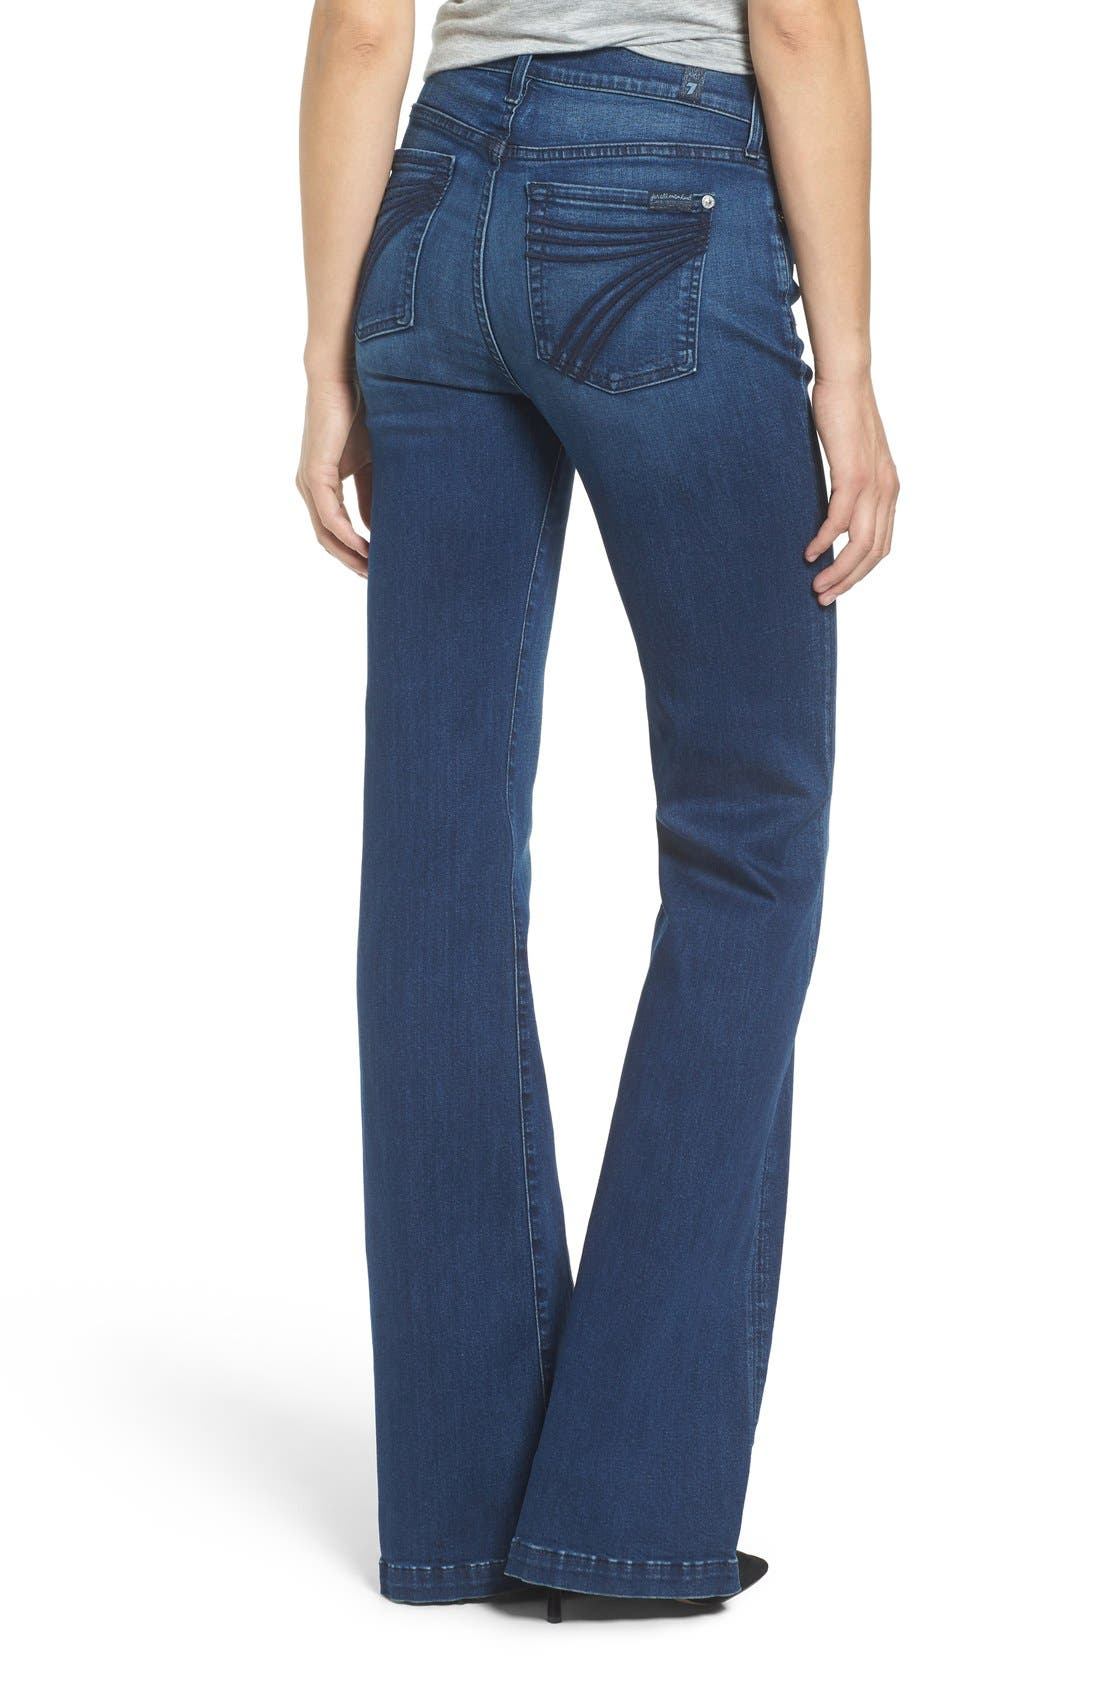 Alternate Image 2  - 7 For All Mankind Tailorless Dojo Flare Jeans (Slim Illusion Luxe Luminous)